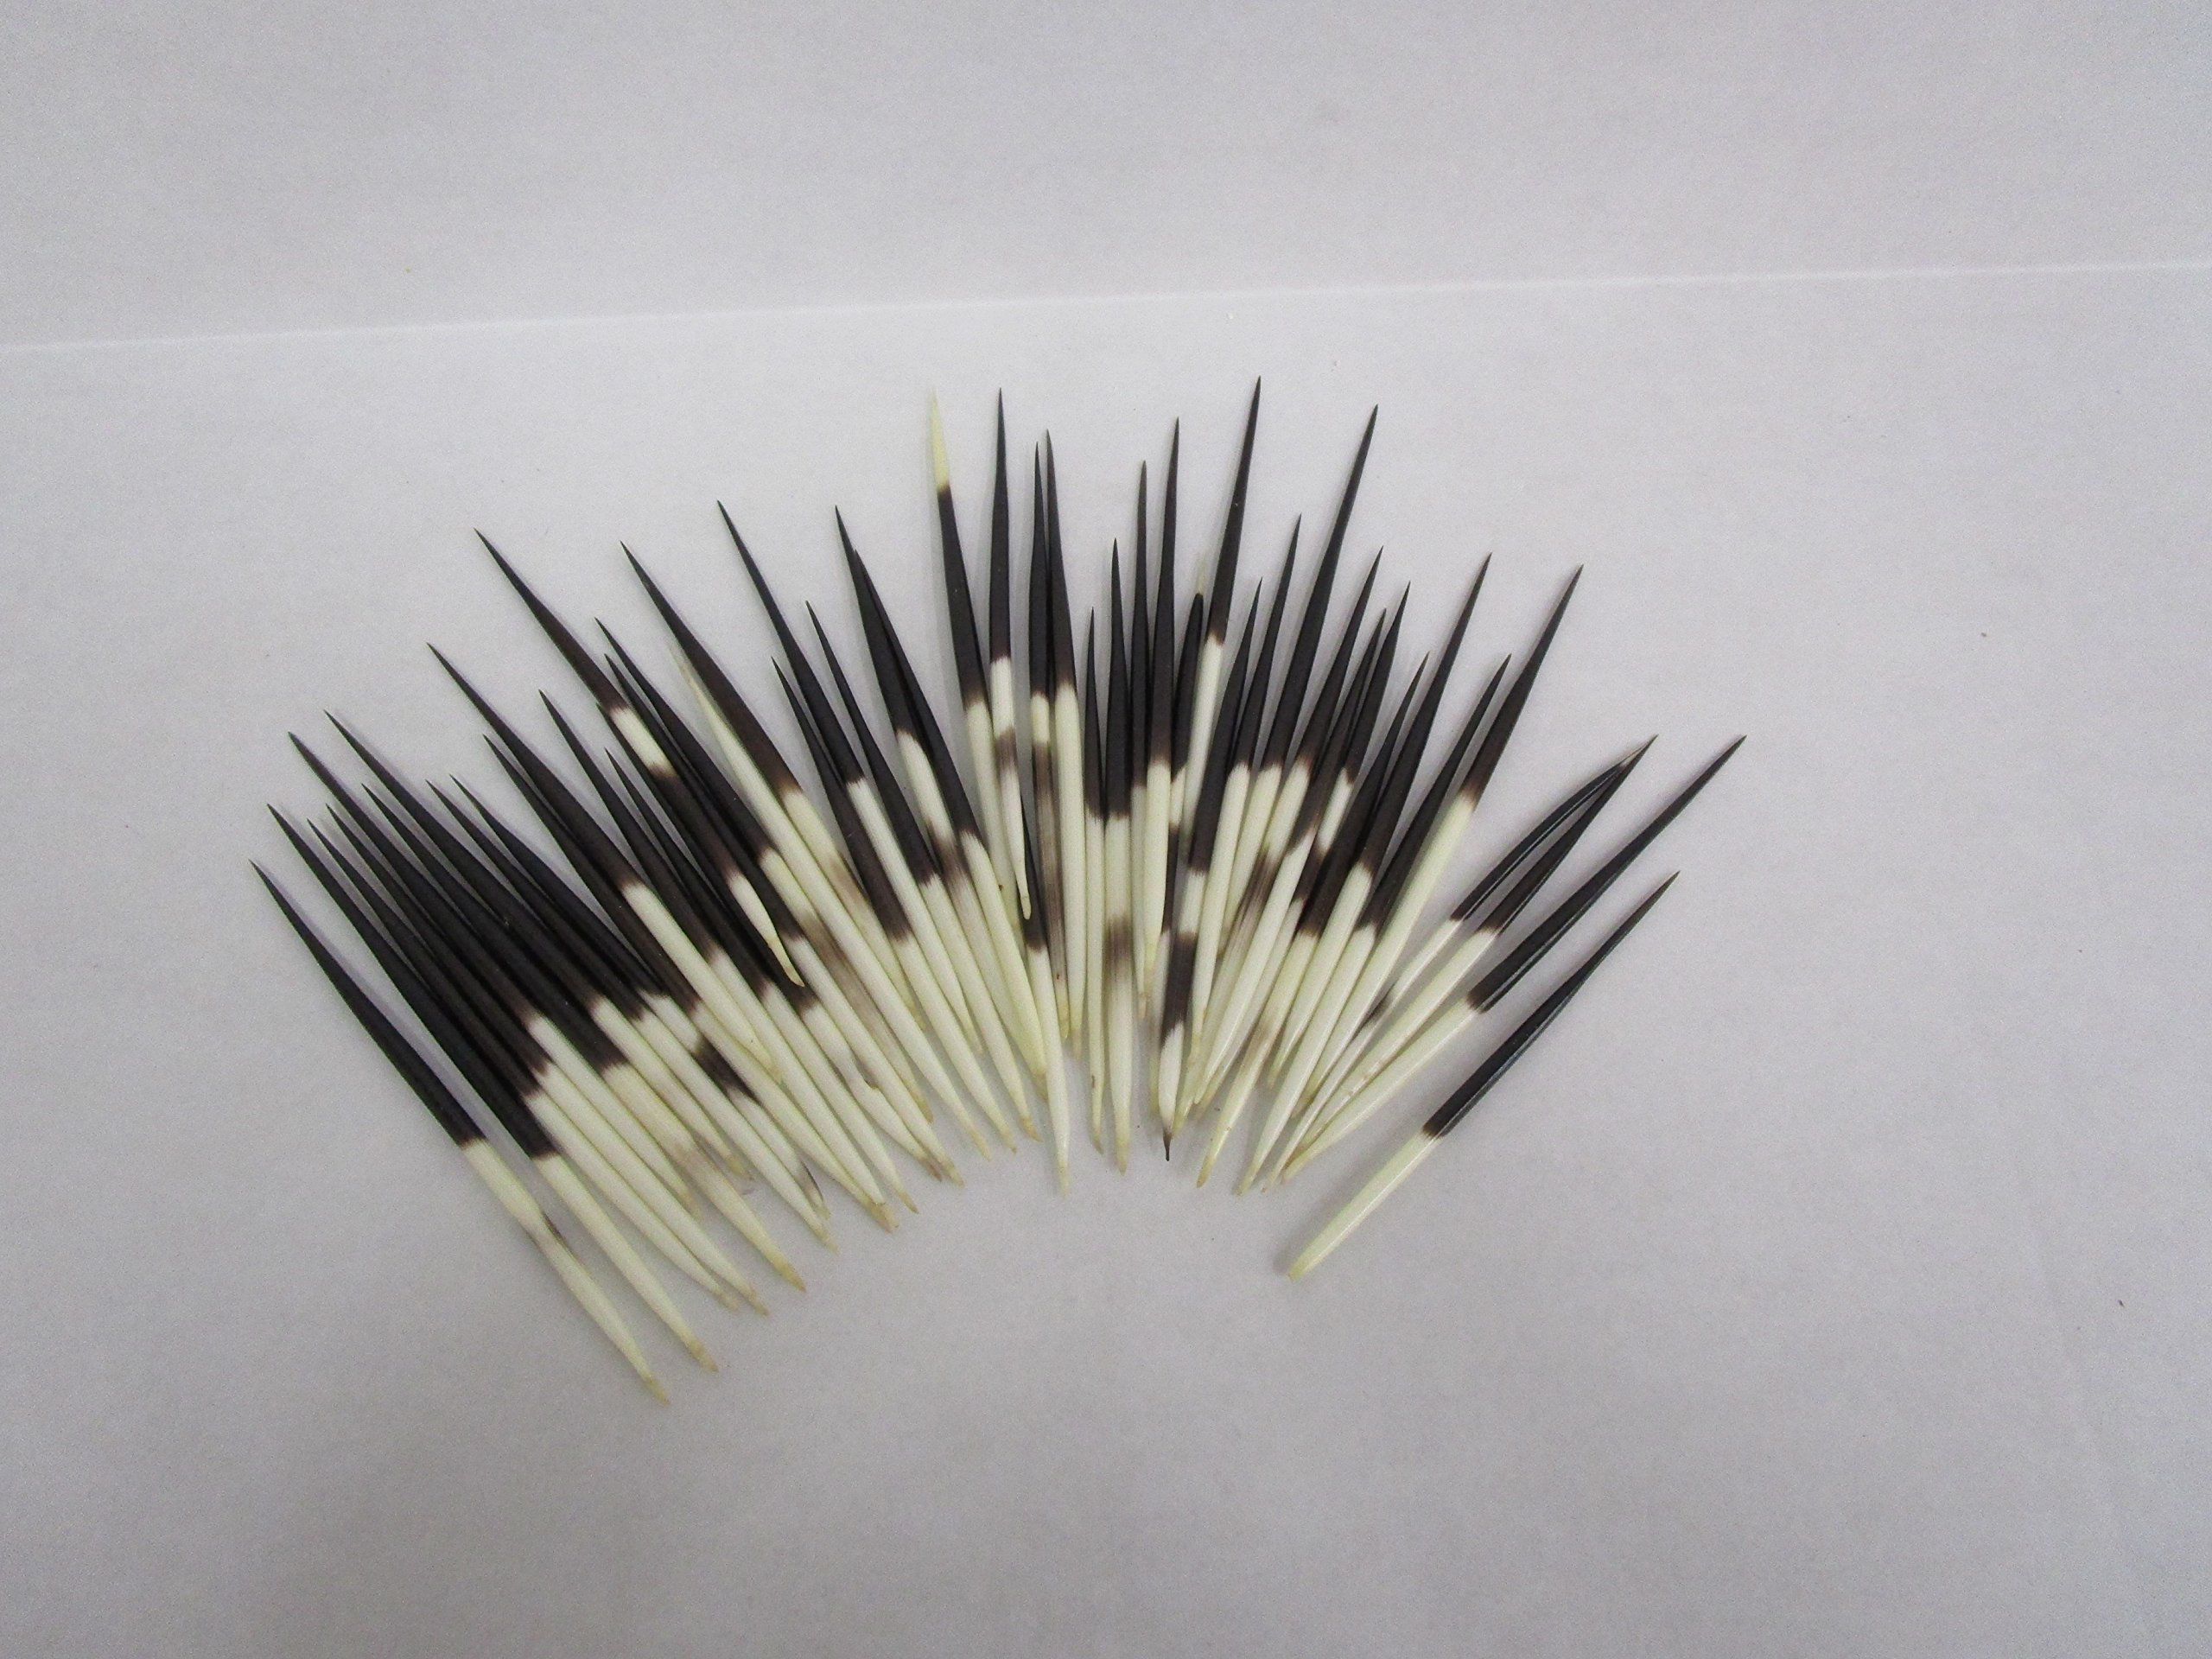 50 pc Fat South African Porcupine quills 3'' to 5'' by Atlantic Coral Enterprise